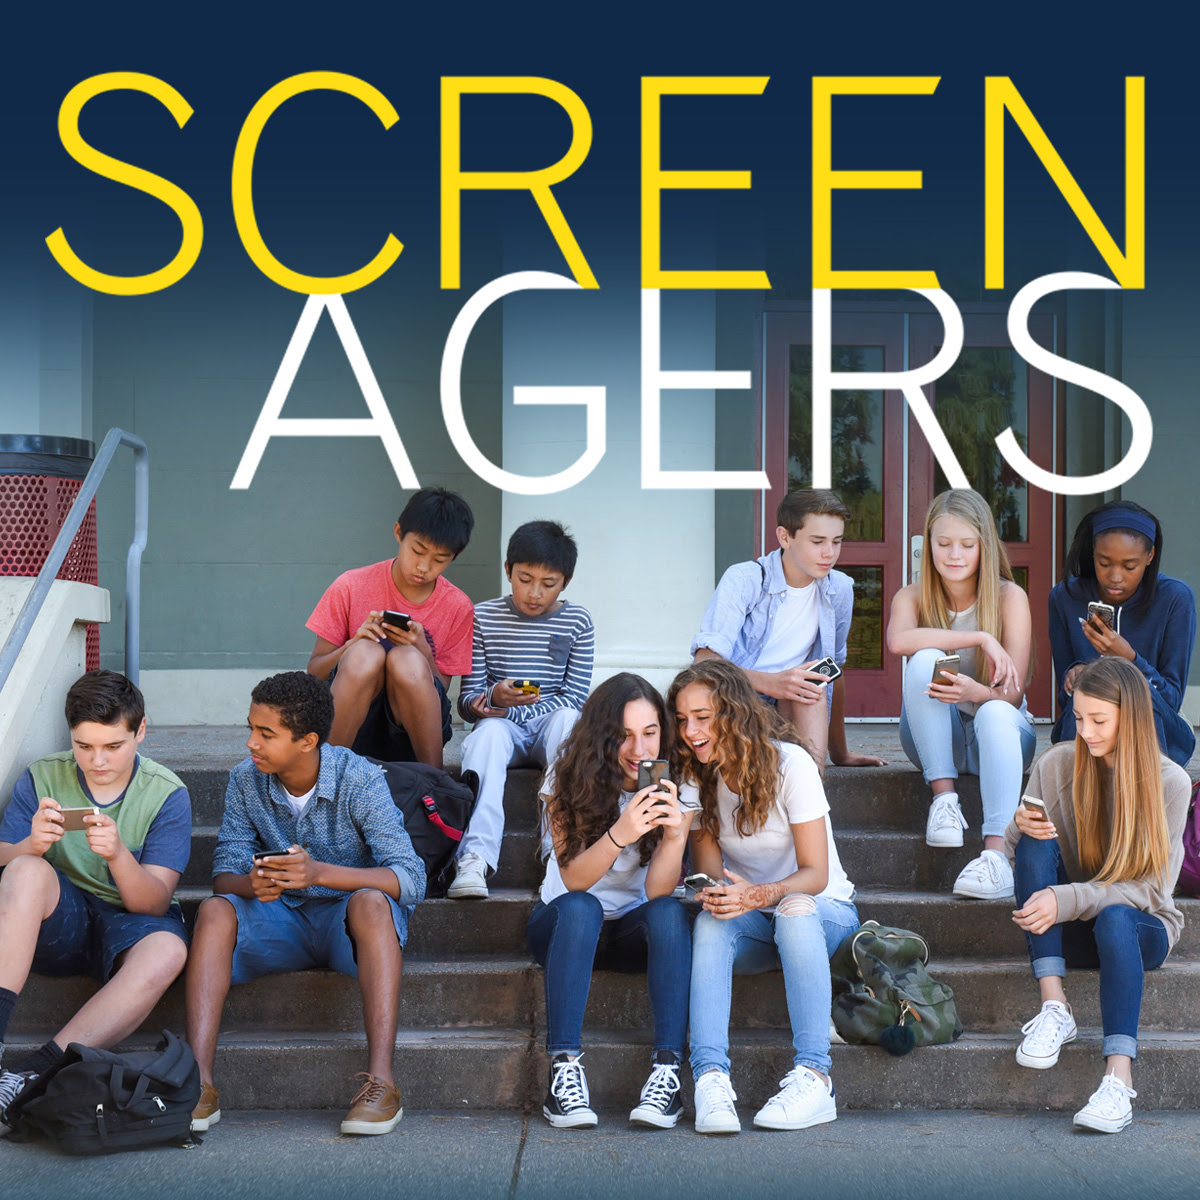 Screenagers Film Presented By Holy Ground Family Fellowship of America